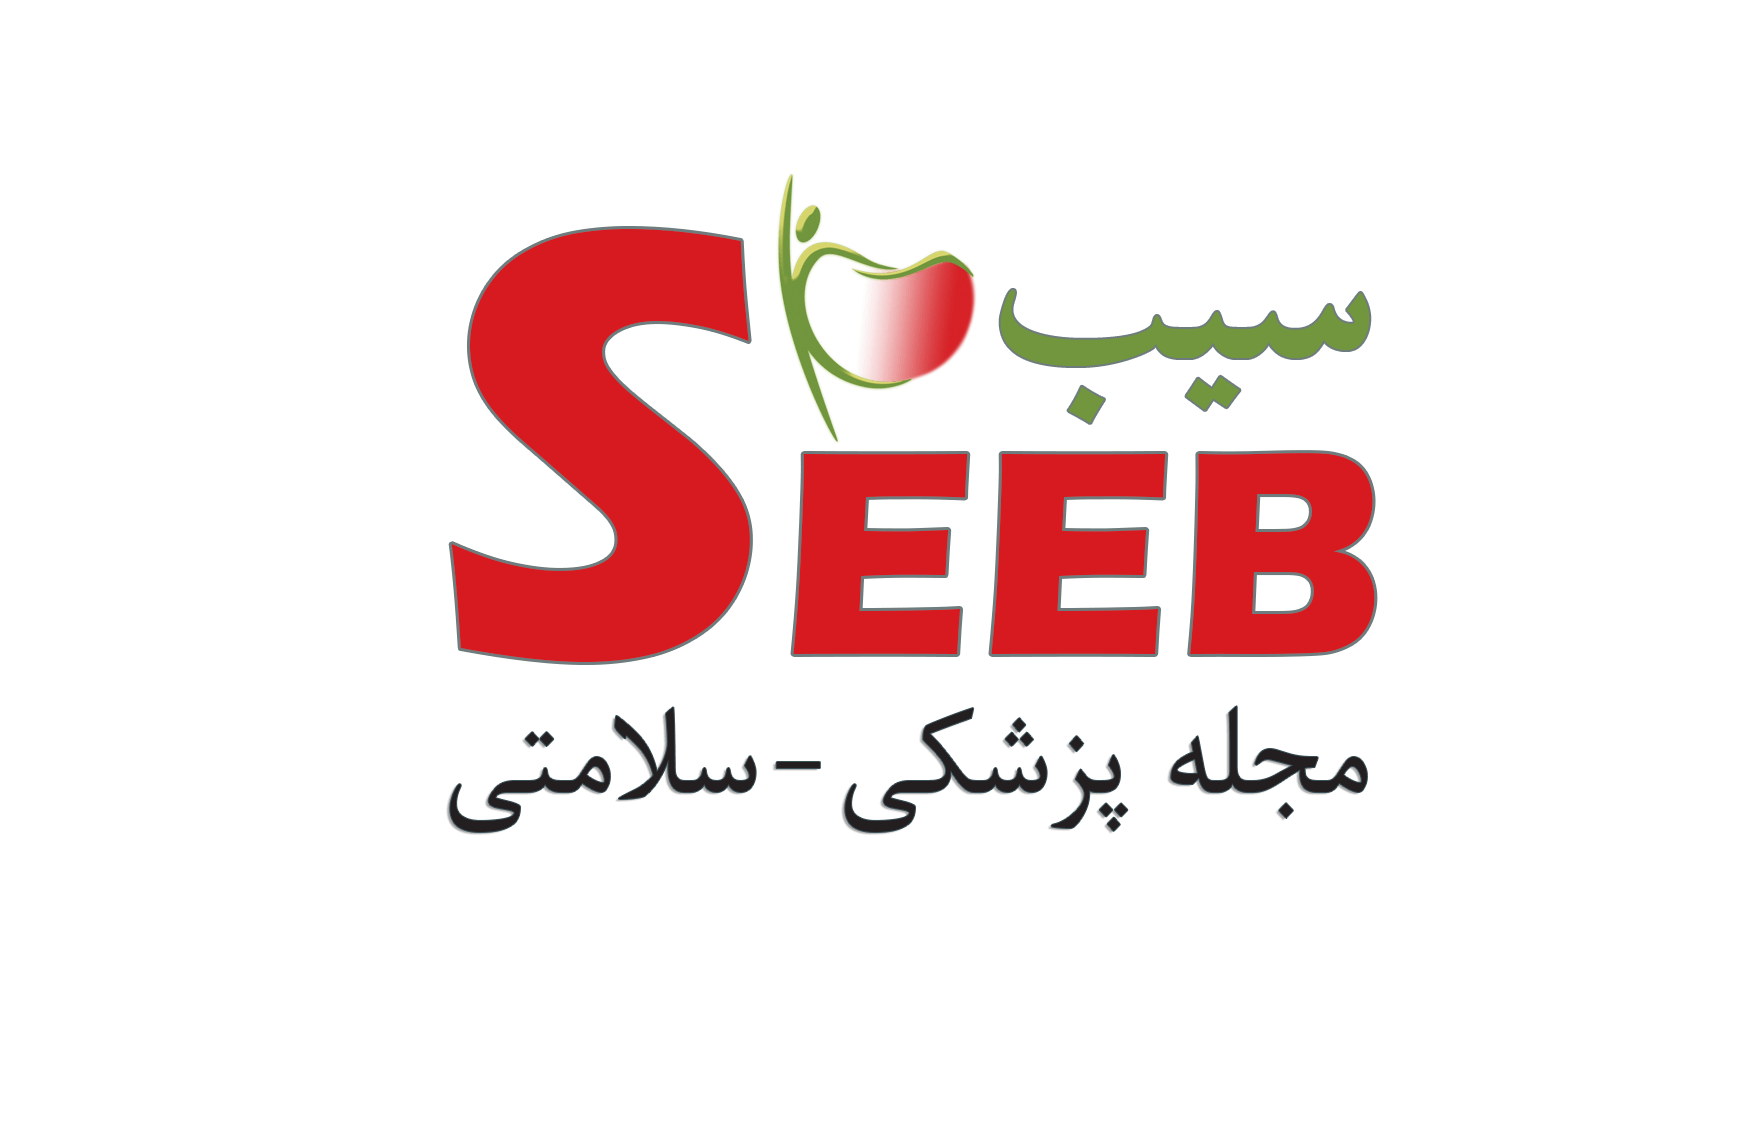 Seeb-Logo-Red